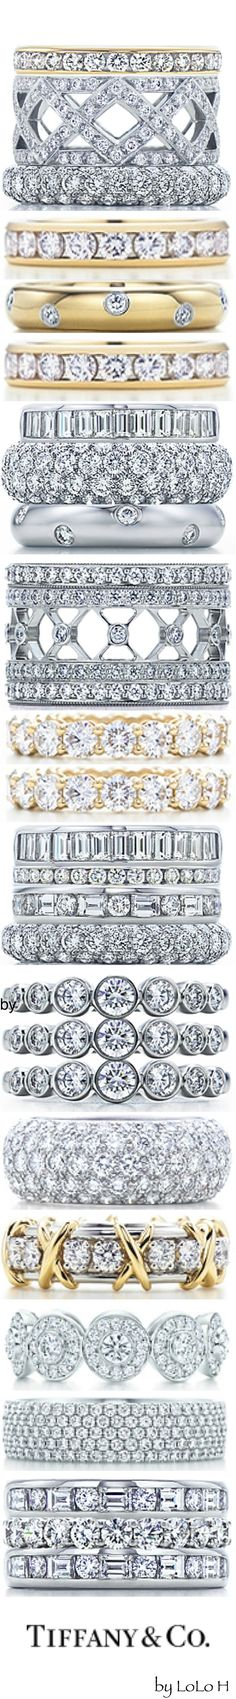 Tiffany Celebration Rings...you can create your own unique stack on Tiffany